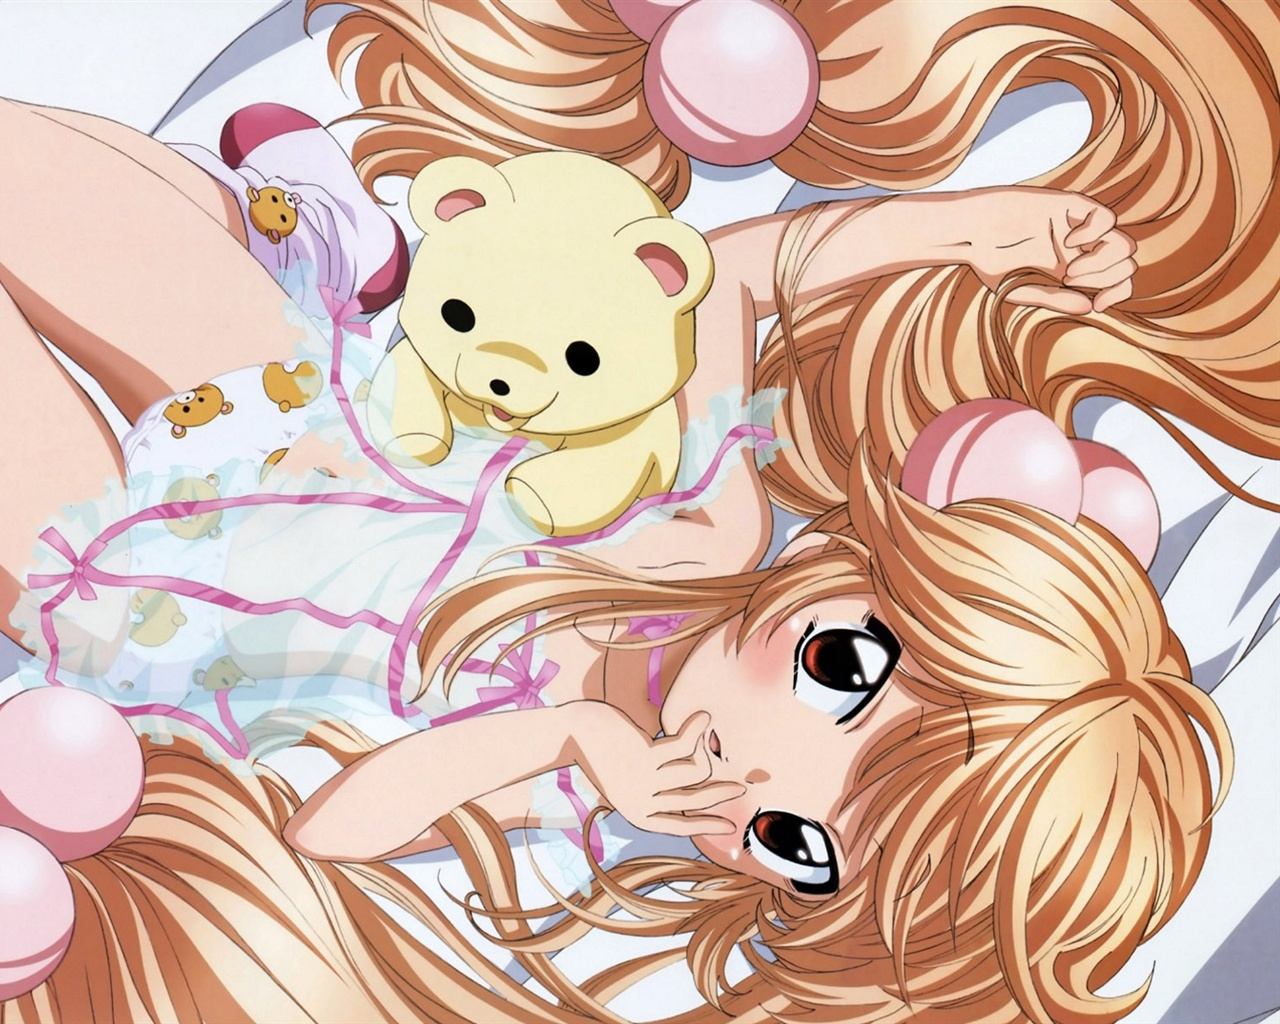 Bed of golden hair anime girl wallpaper 1280x1024